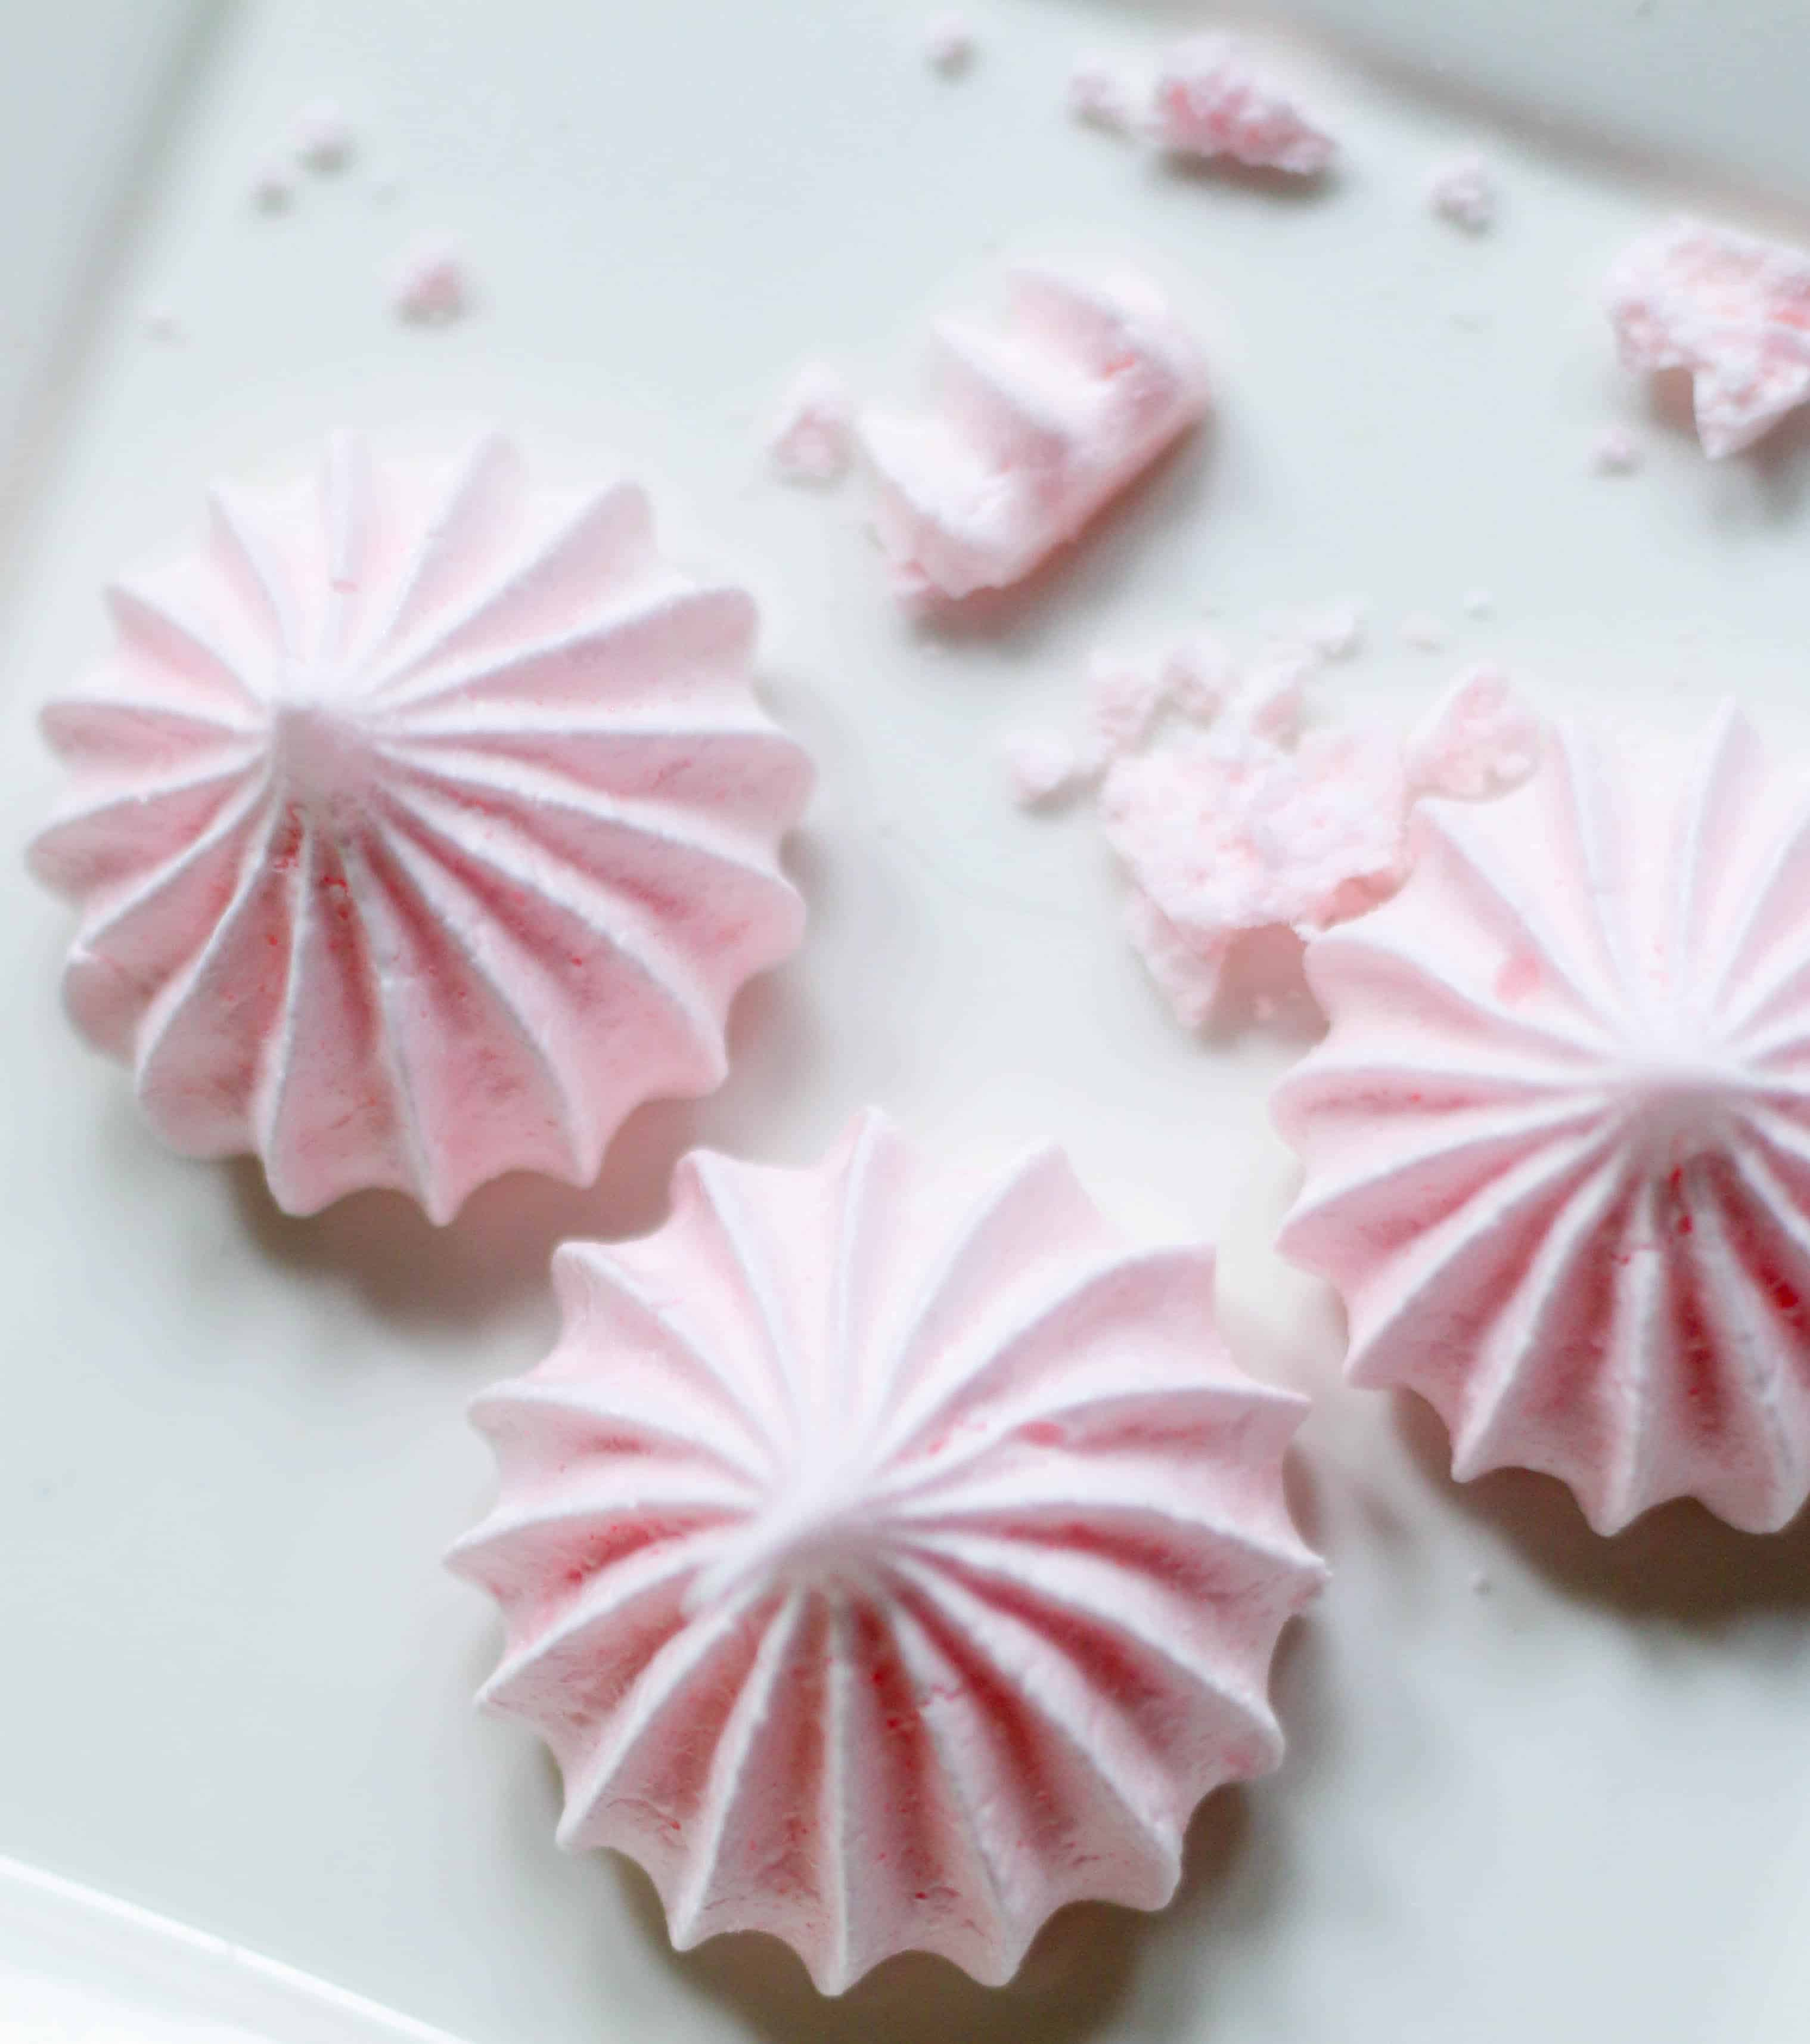 three peppermint meringues on a plate